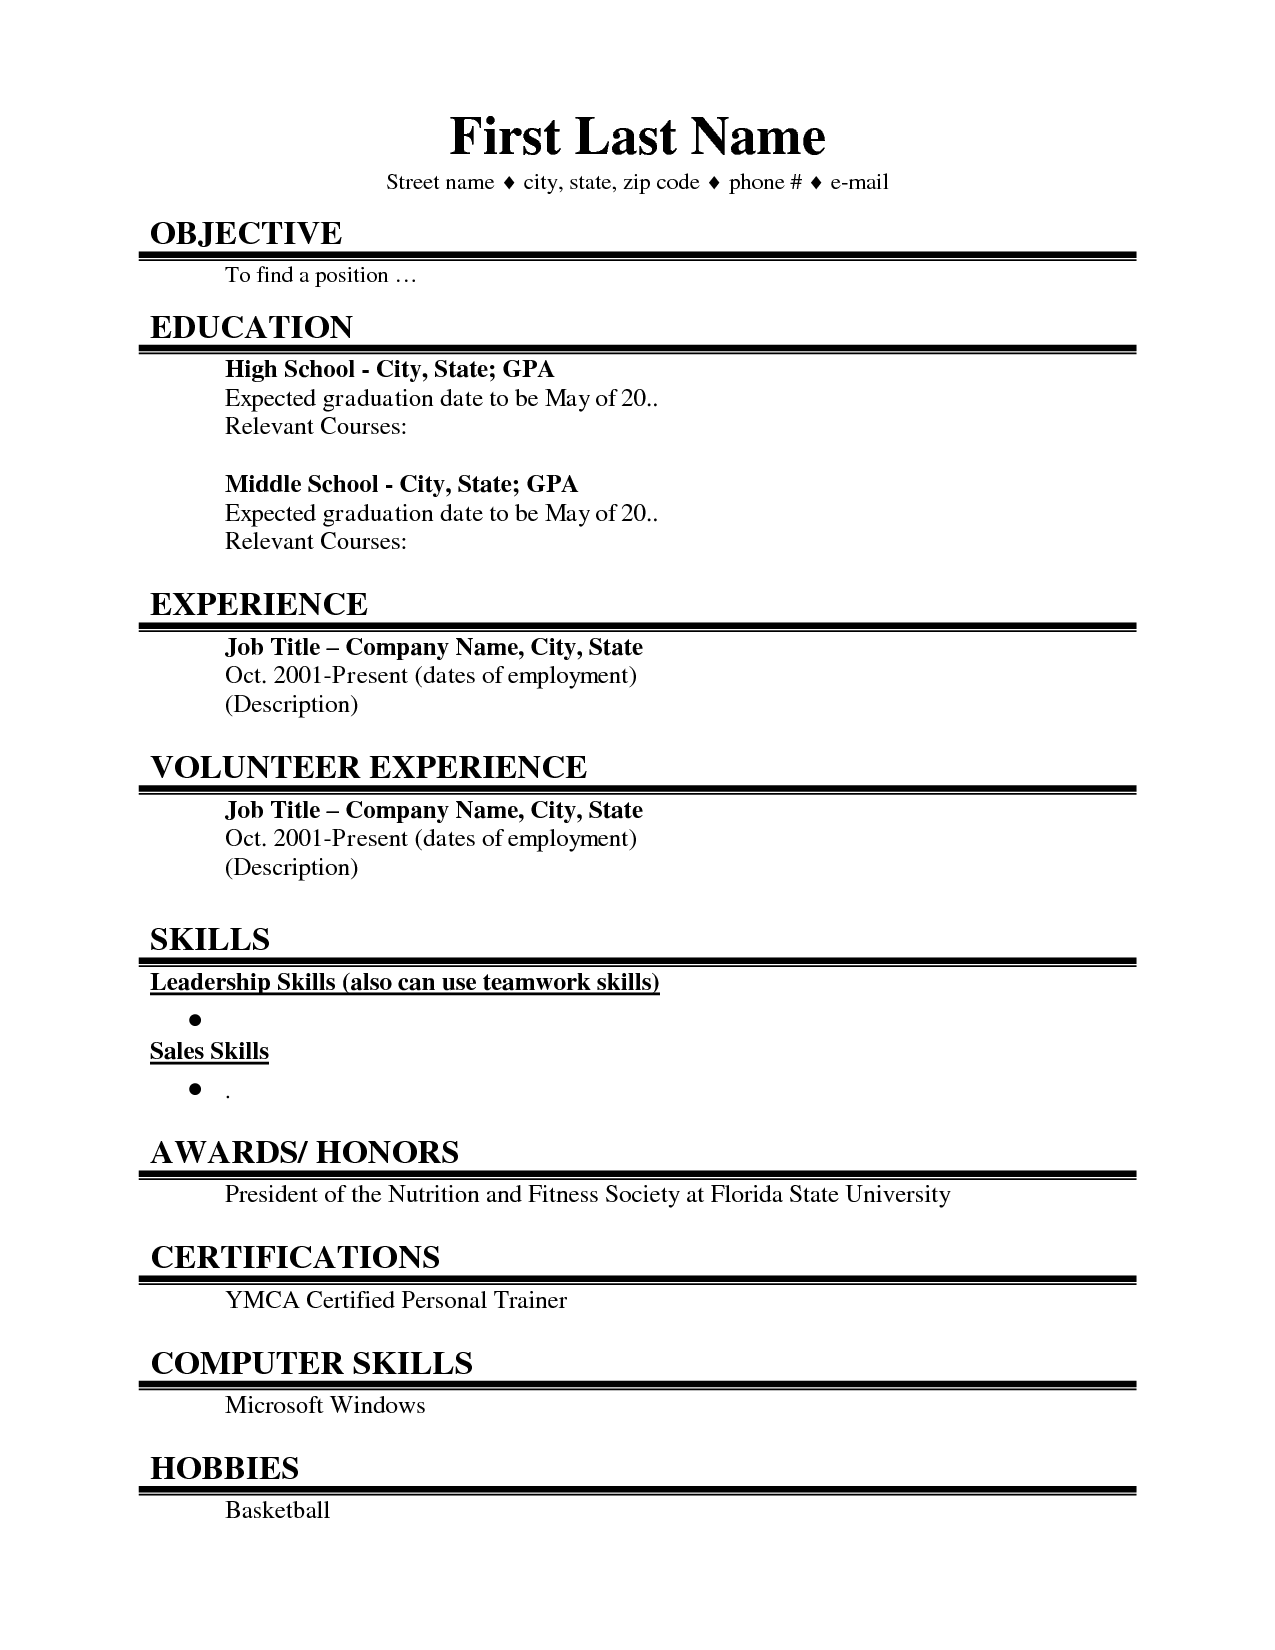 Philanthropy Resume Examples First Job Resume Google Search Resume Pinterest